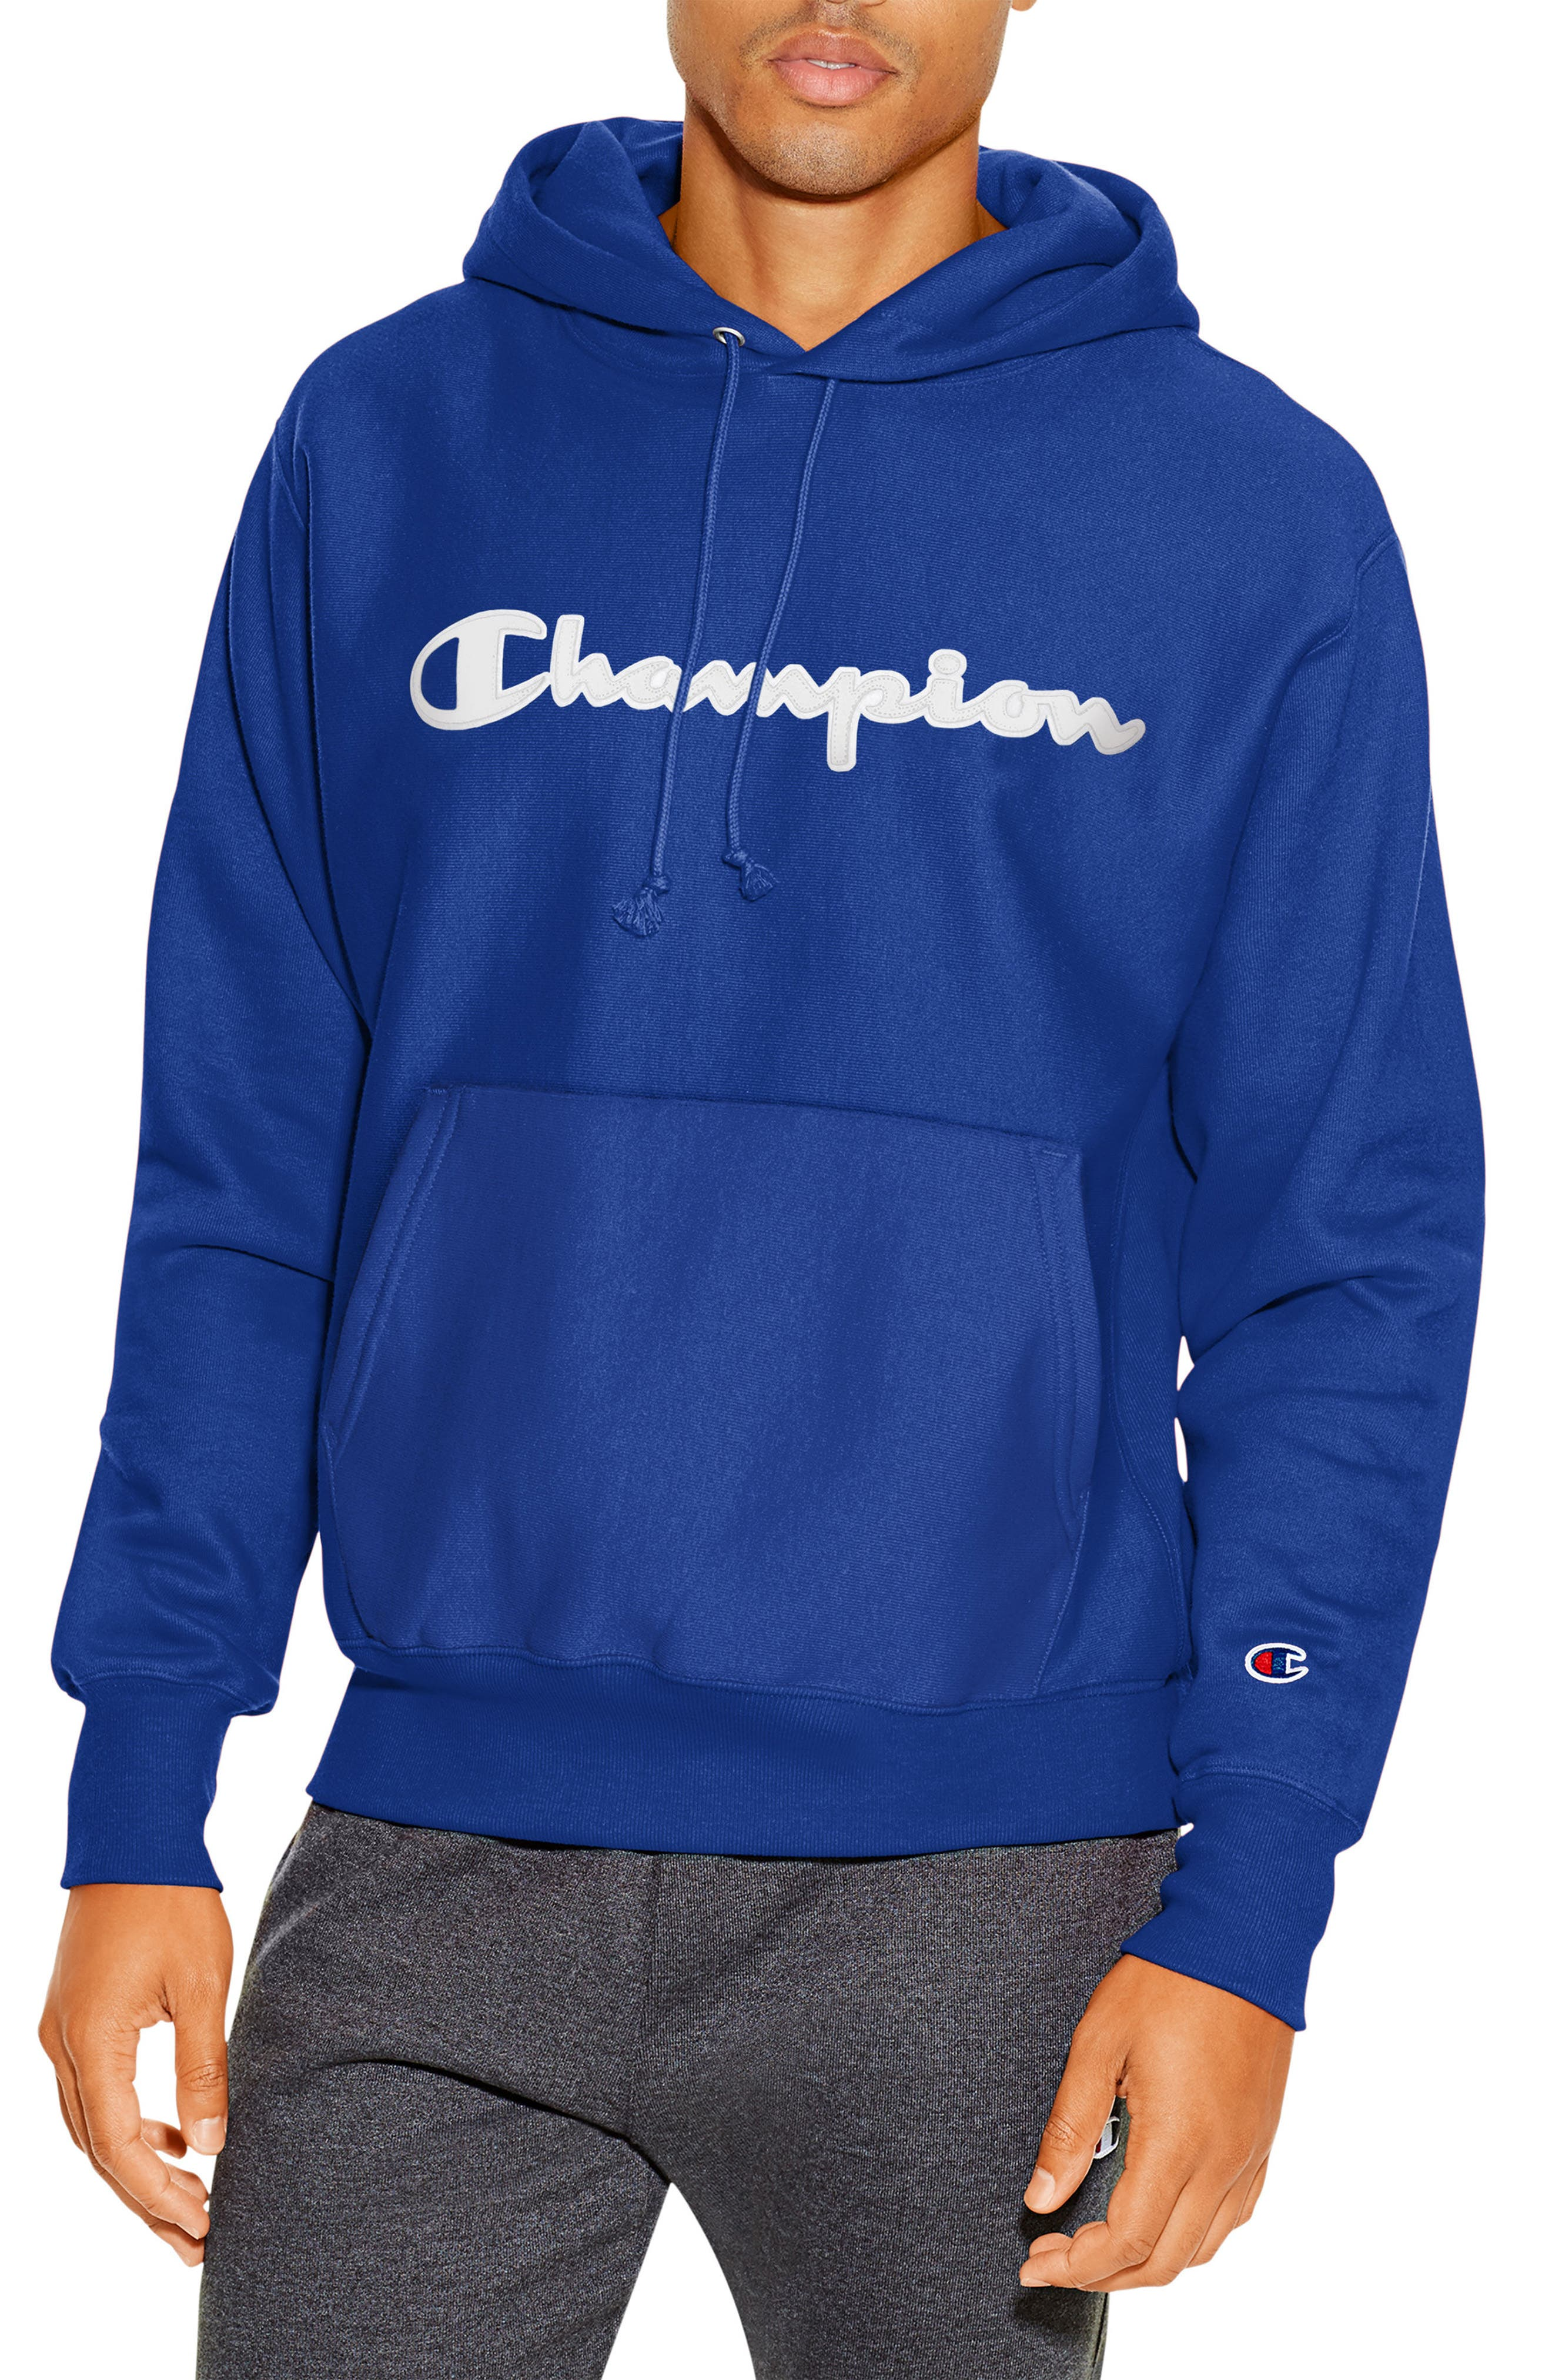 Alternate Image 1 Selected - Champion Reverse Weave® Pullover Hoodie